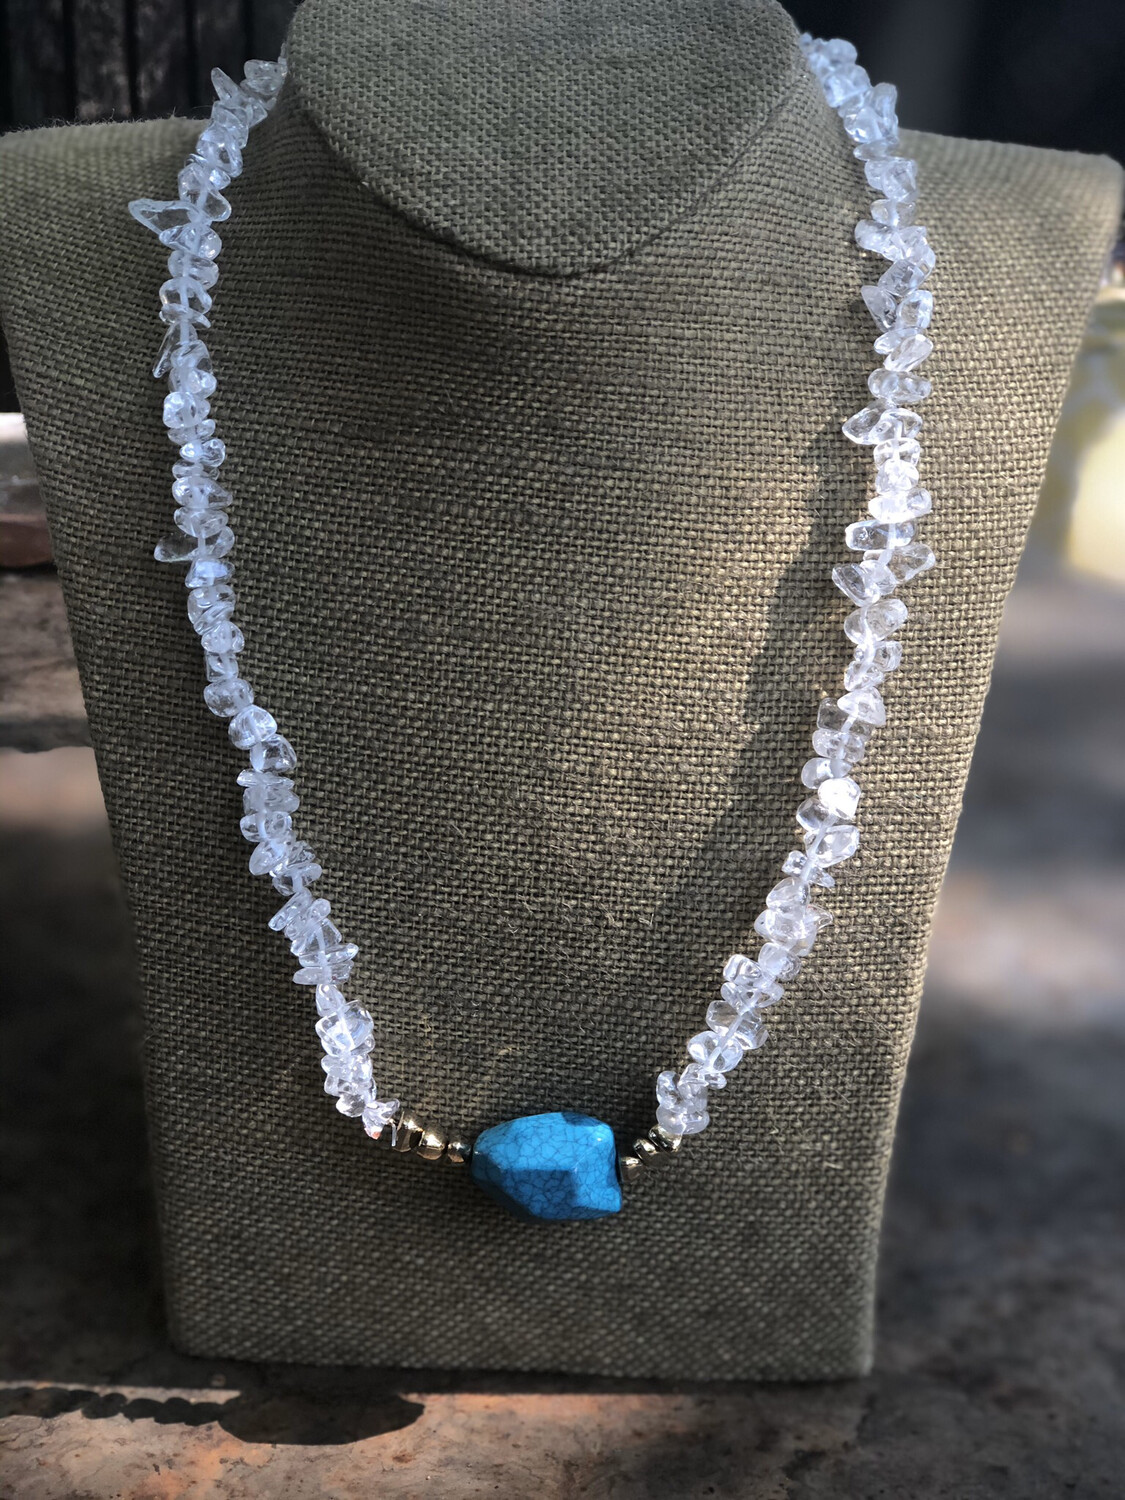 Crystal beads with Turquoise stone pendant